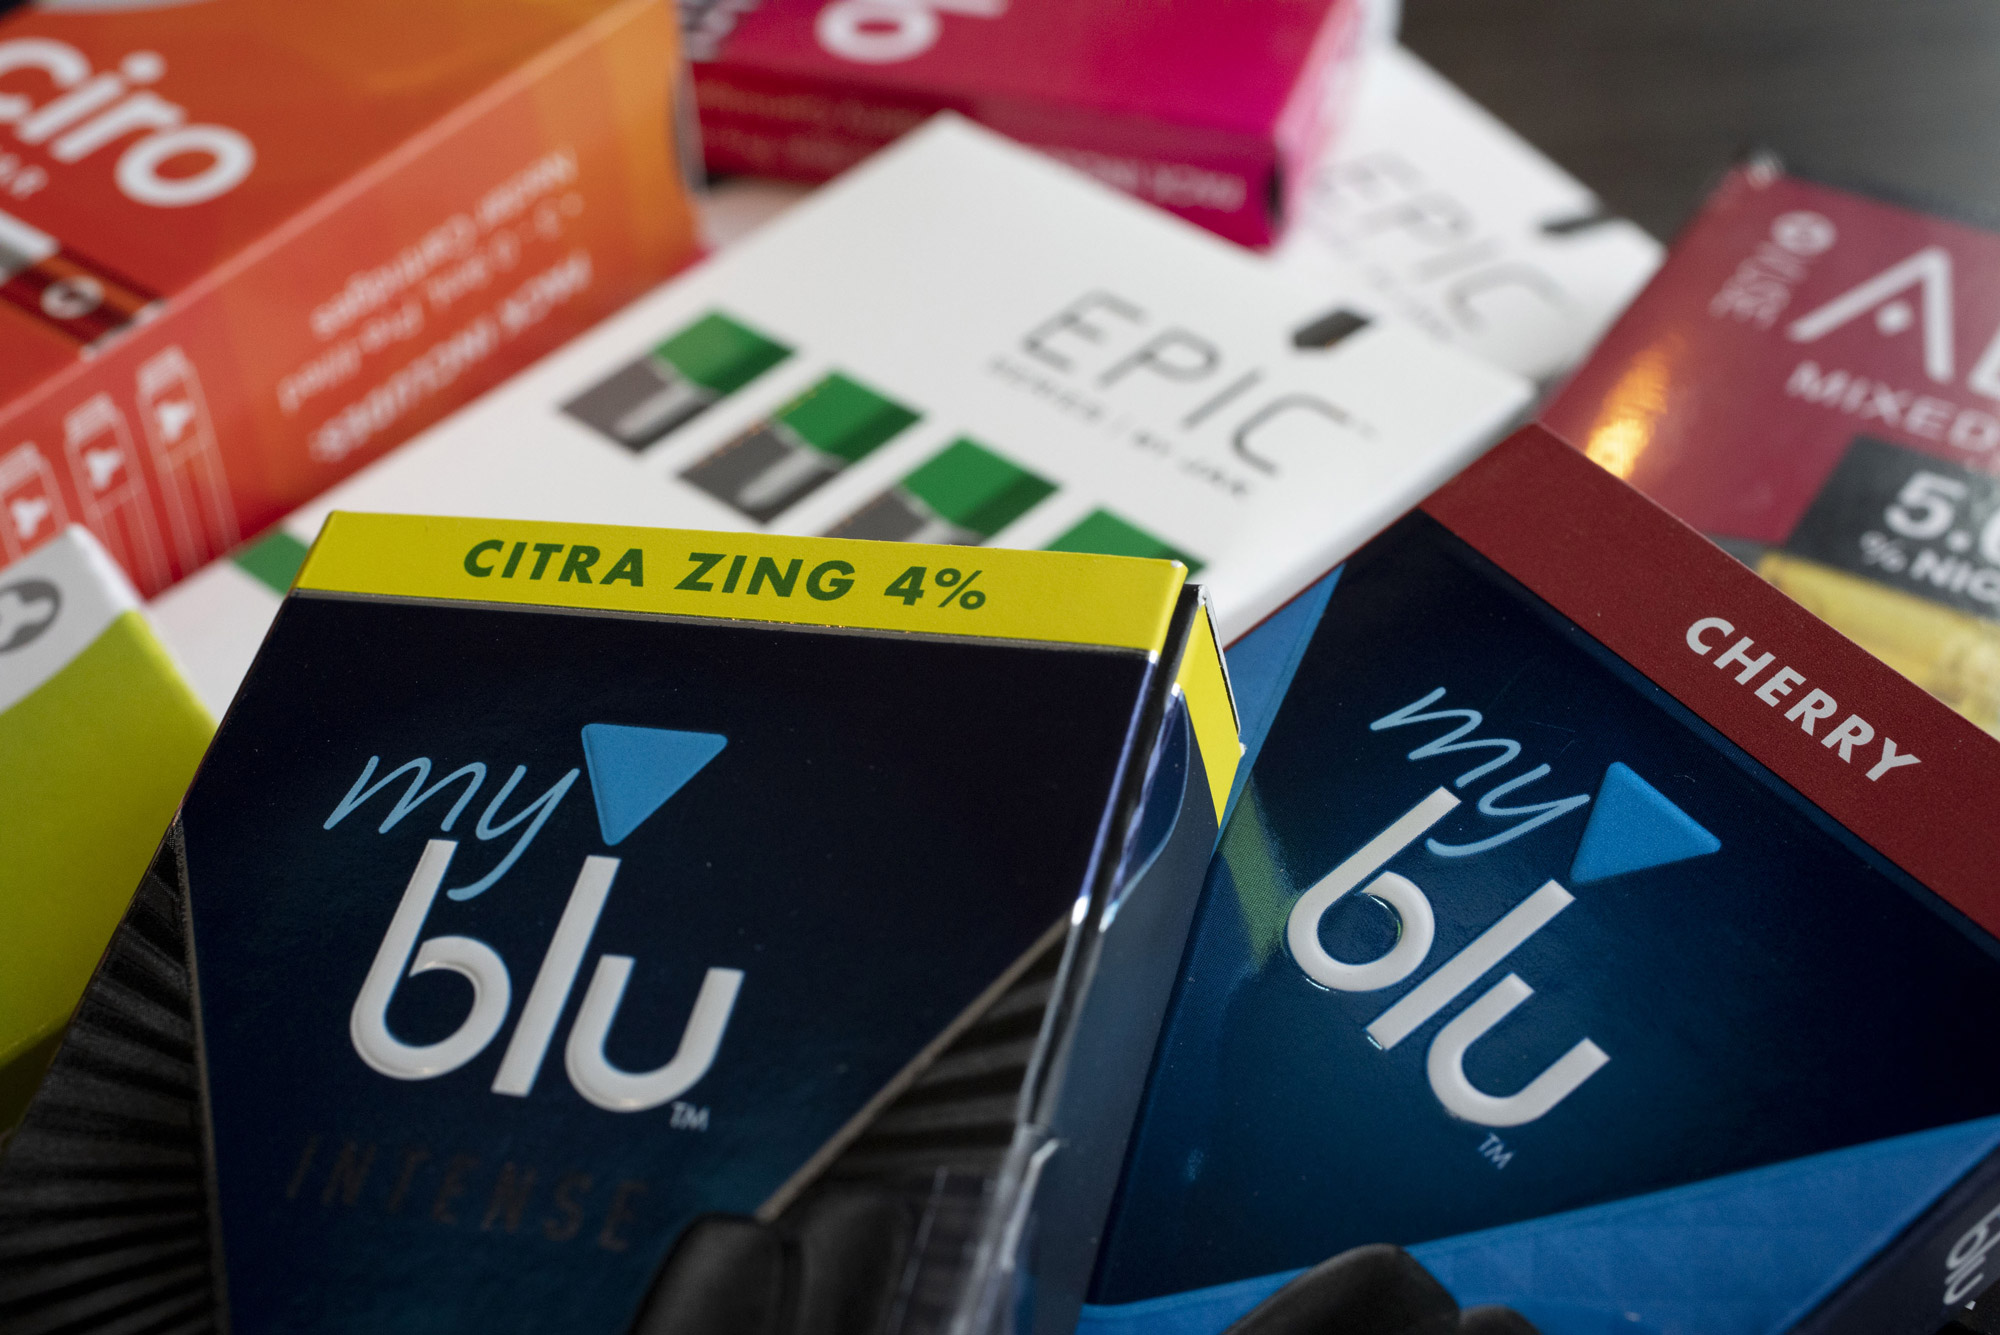 A variety of flavored e-cigarette refills